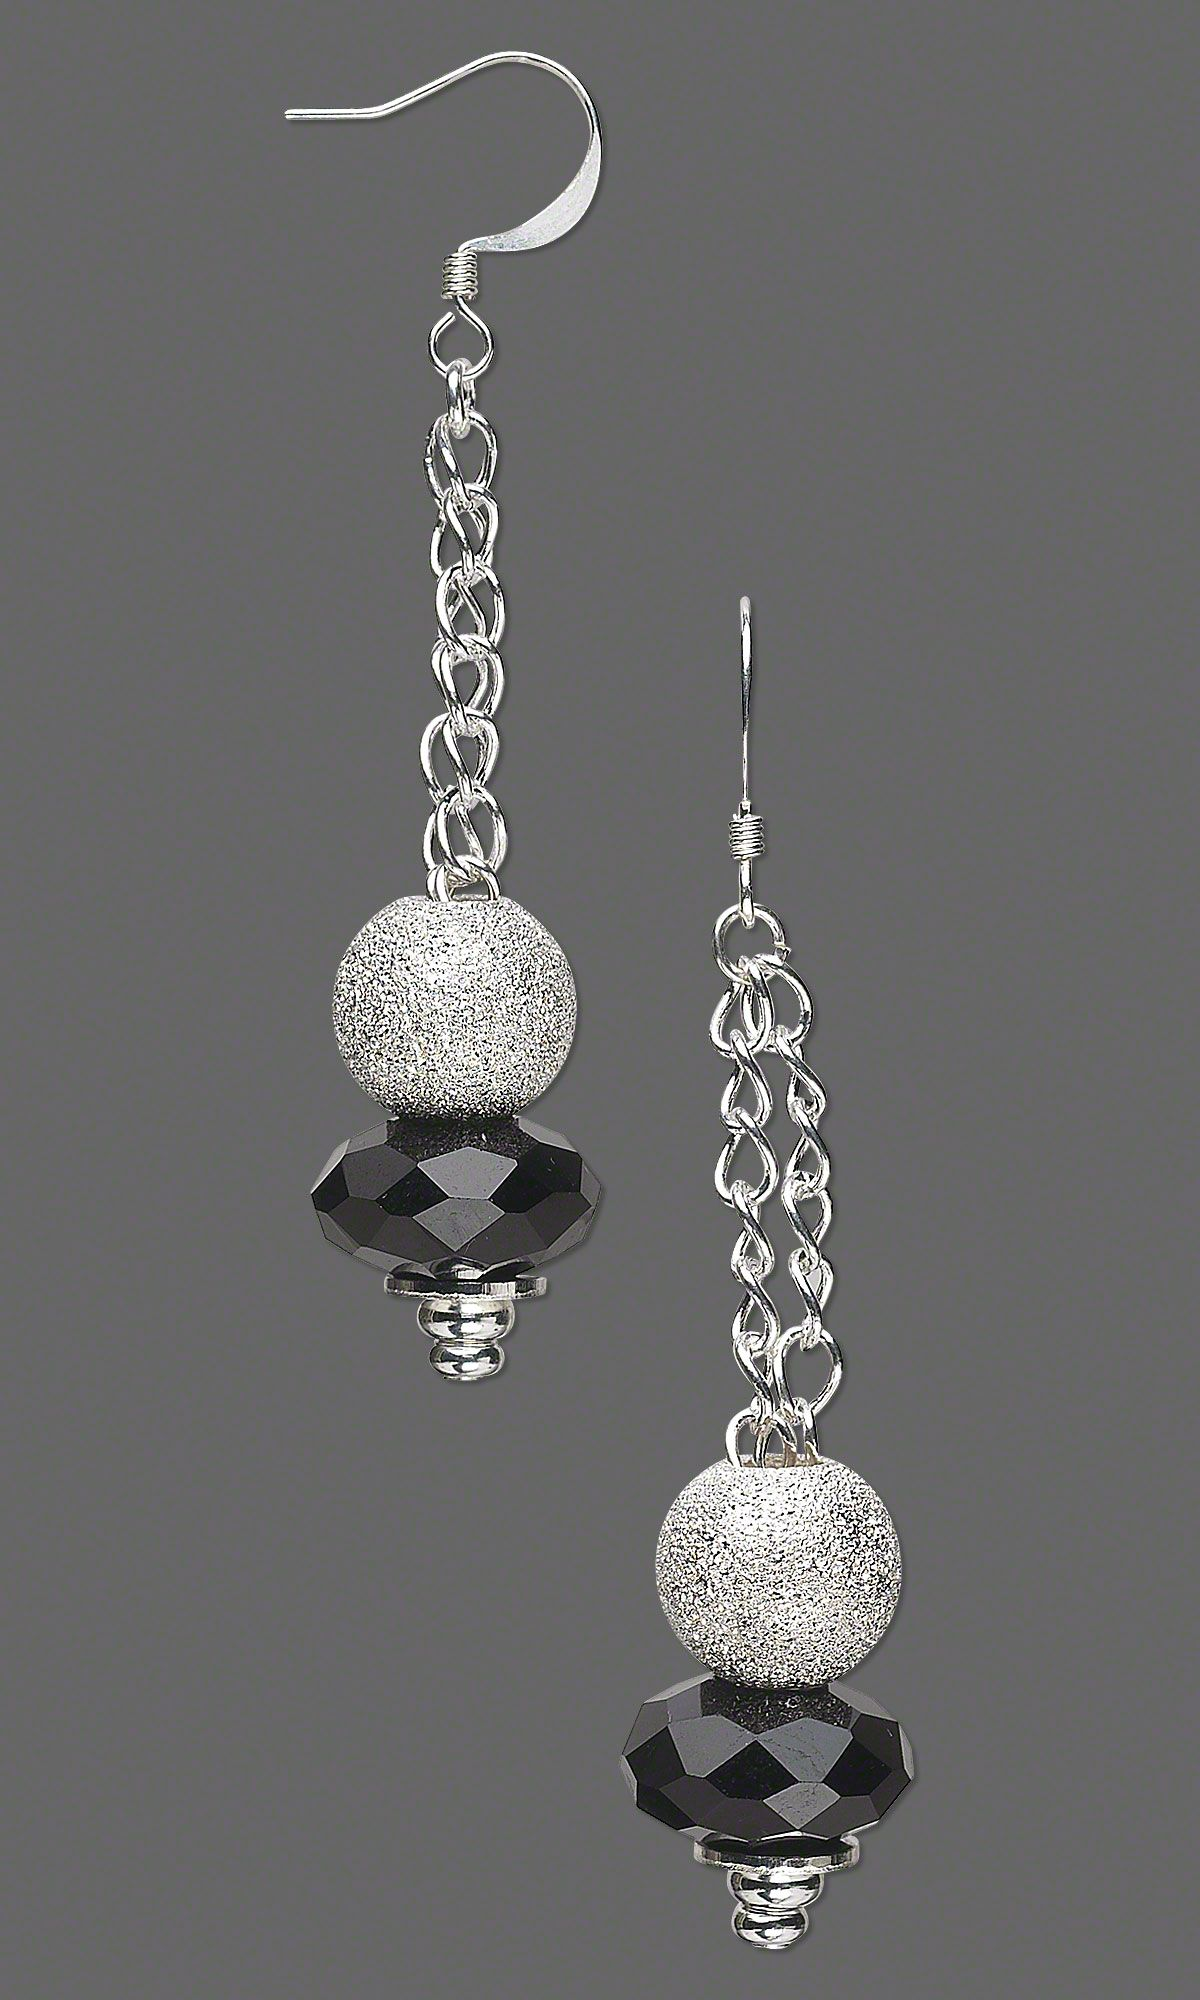 Jewelry Design - Earrings with Dione® Glass Beads, Silver-Plated Brass Stardust Beads and Silver-Plated Chain - Fire Mountain Gems and Beads